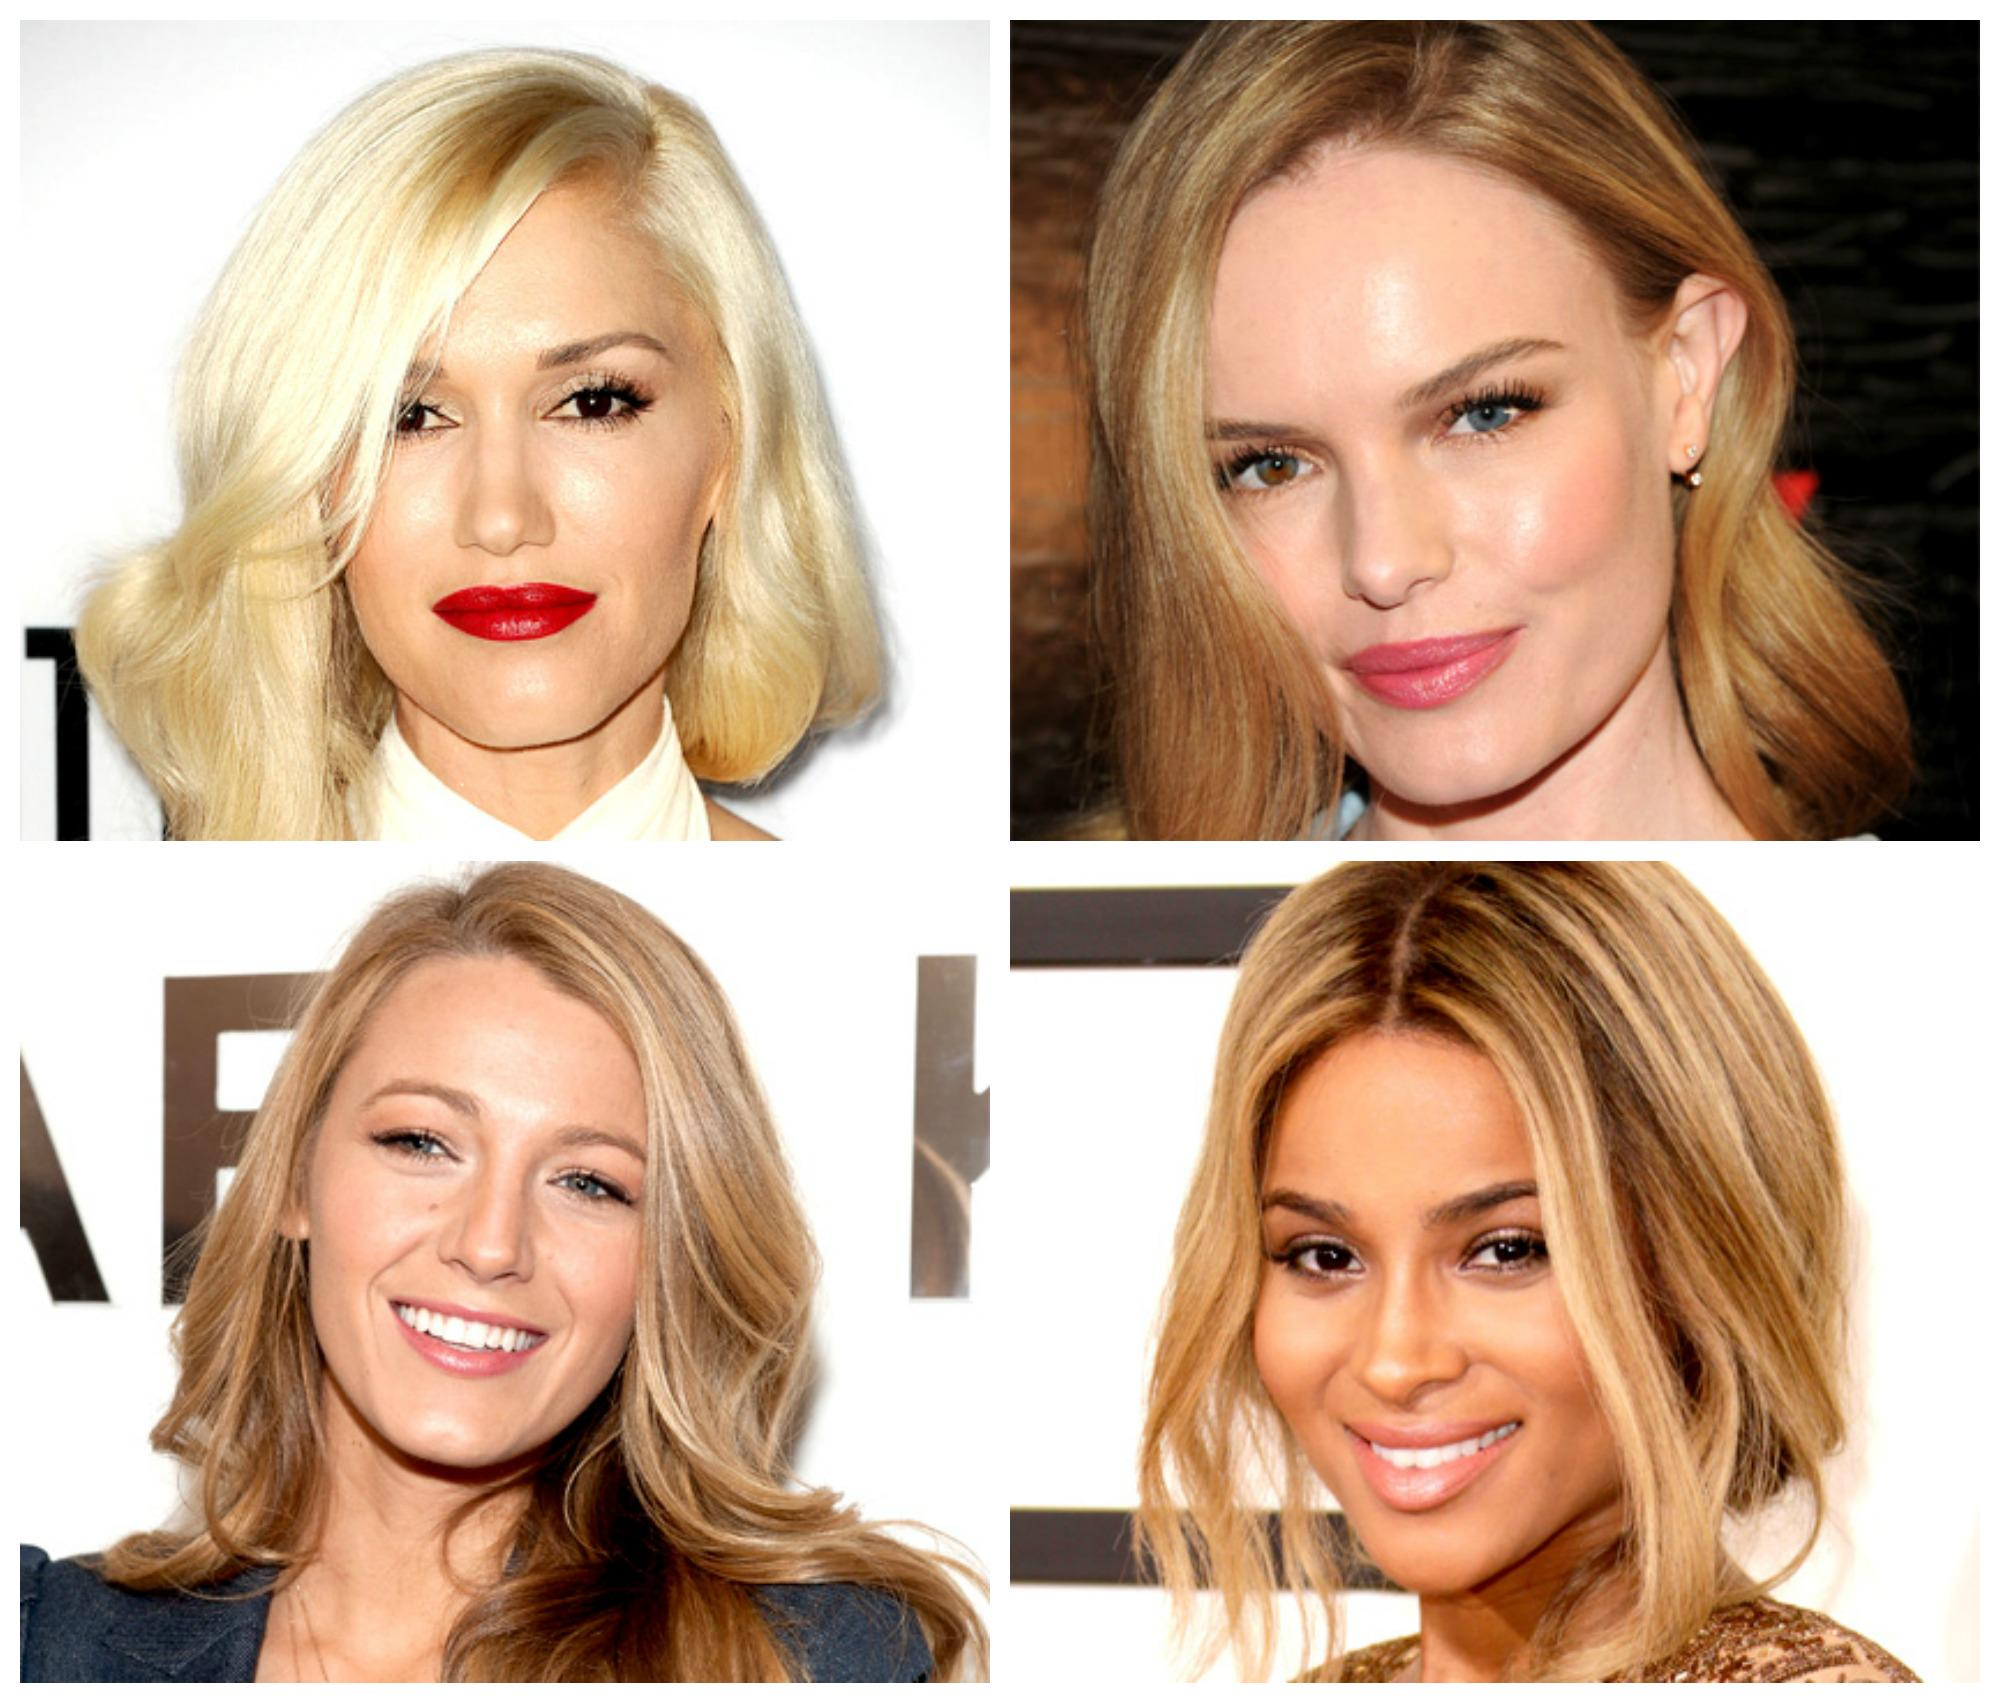 Calling all blondes! Find the best shade for your skin tone: http://t.co/4V5Sd1mKHw http://t.co/im1fpow8yo